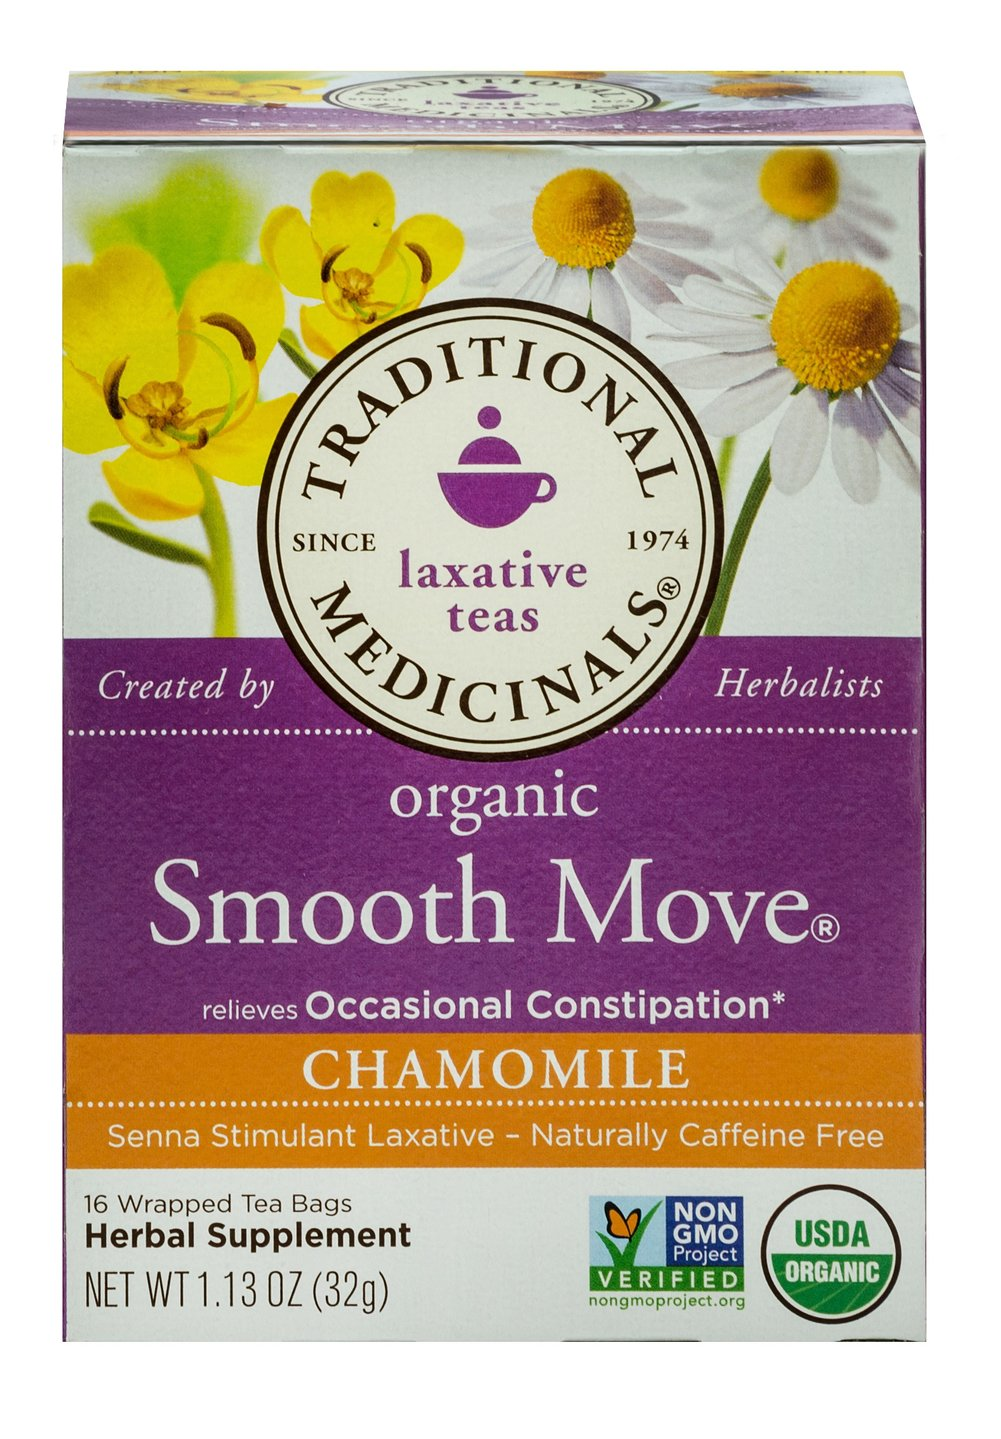 Smooth Move® Chamomile Tea <p><strong>From the Manufacturer's Label:</strong></p><p>Relieves occasional constipation*</p><p><strong></strong></p><p>Smooth Move® Chamomile Tea is manufactured by Traditional Medicinals®</p> 16 Tea Bags  $9.99